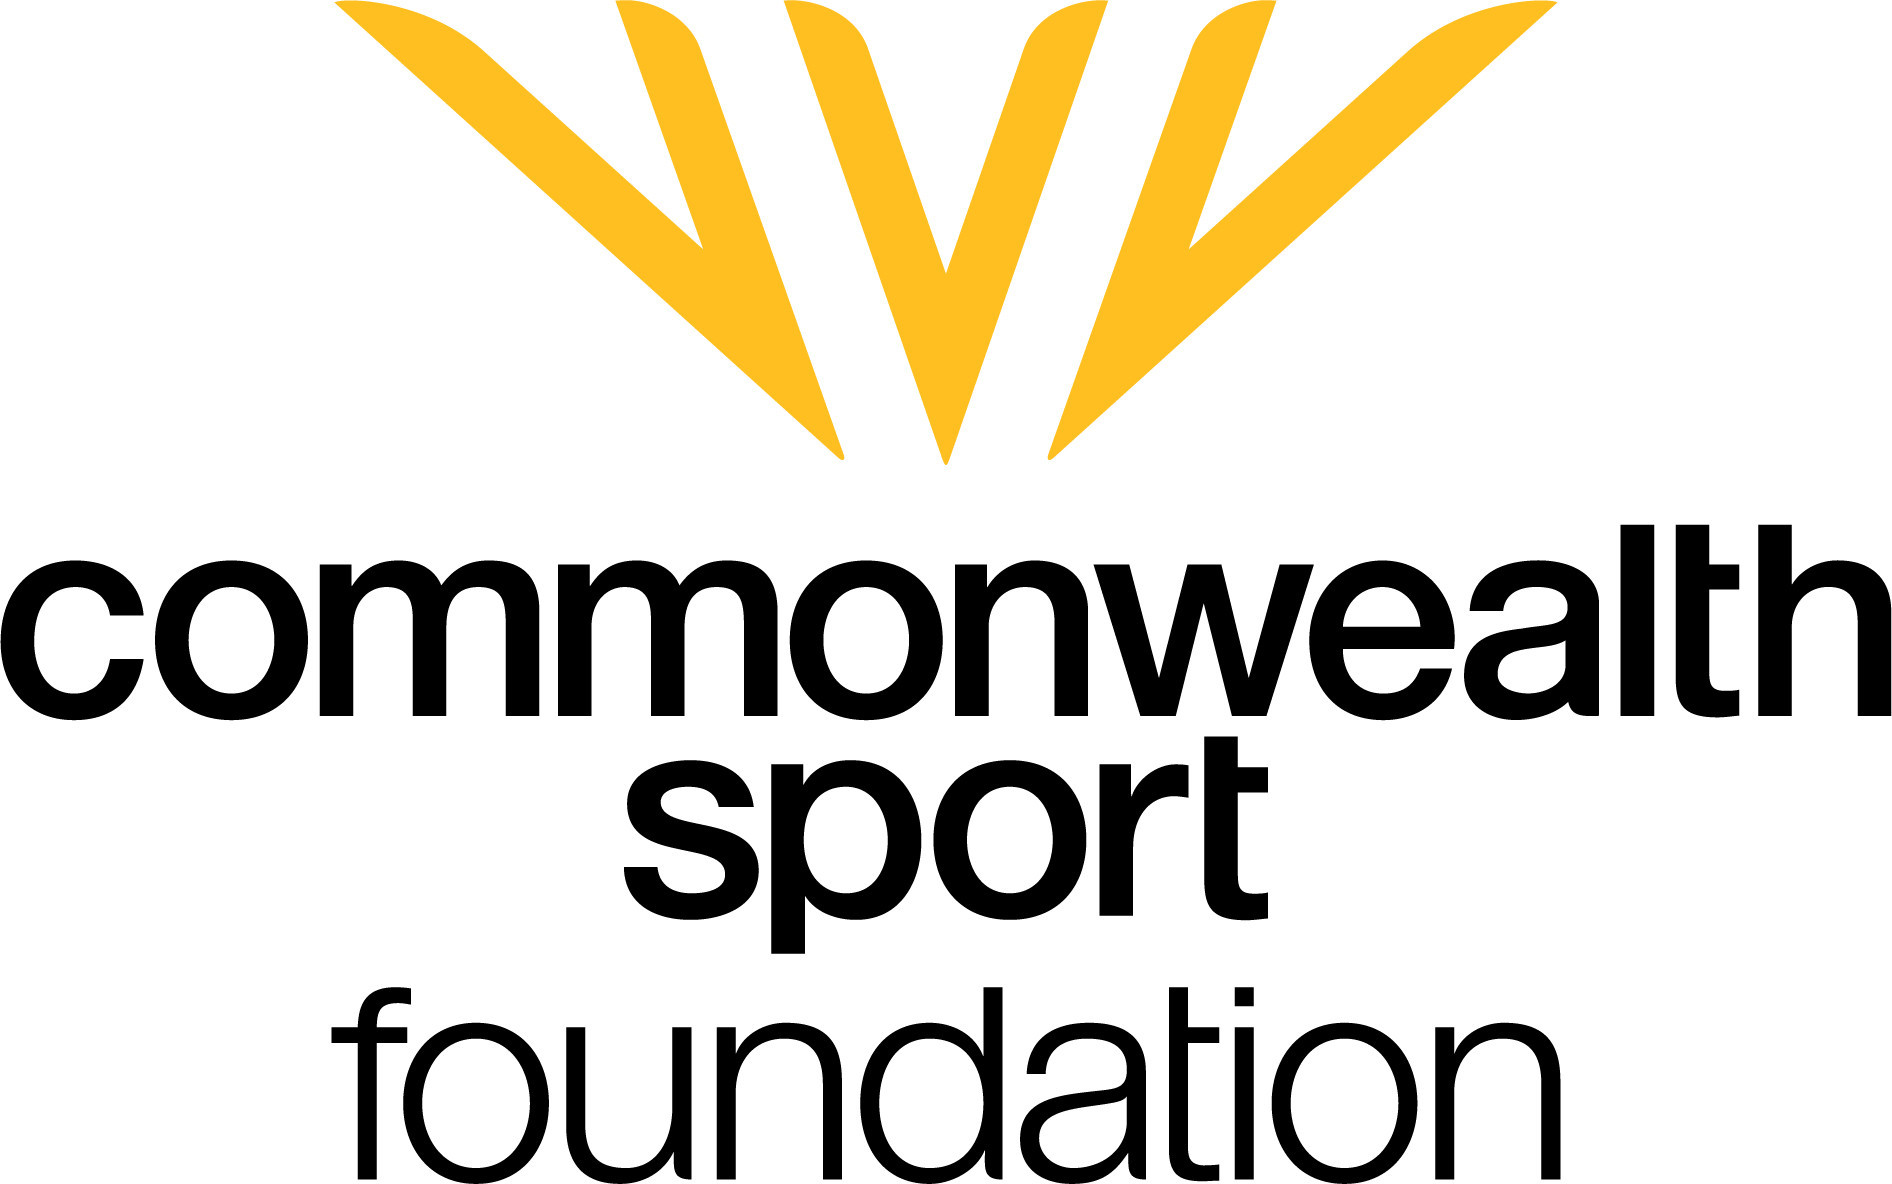 CGF launches new charity Commonwealth Sport Foundation